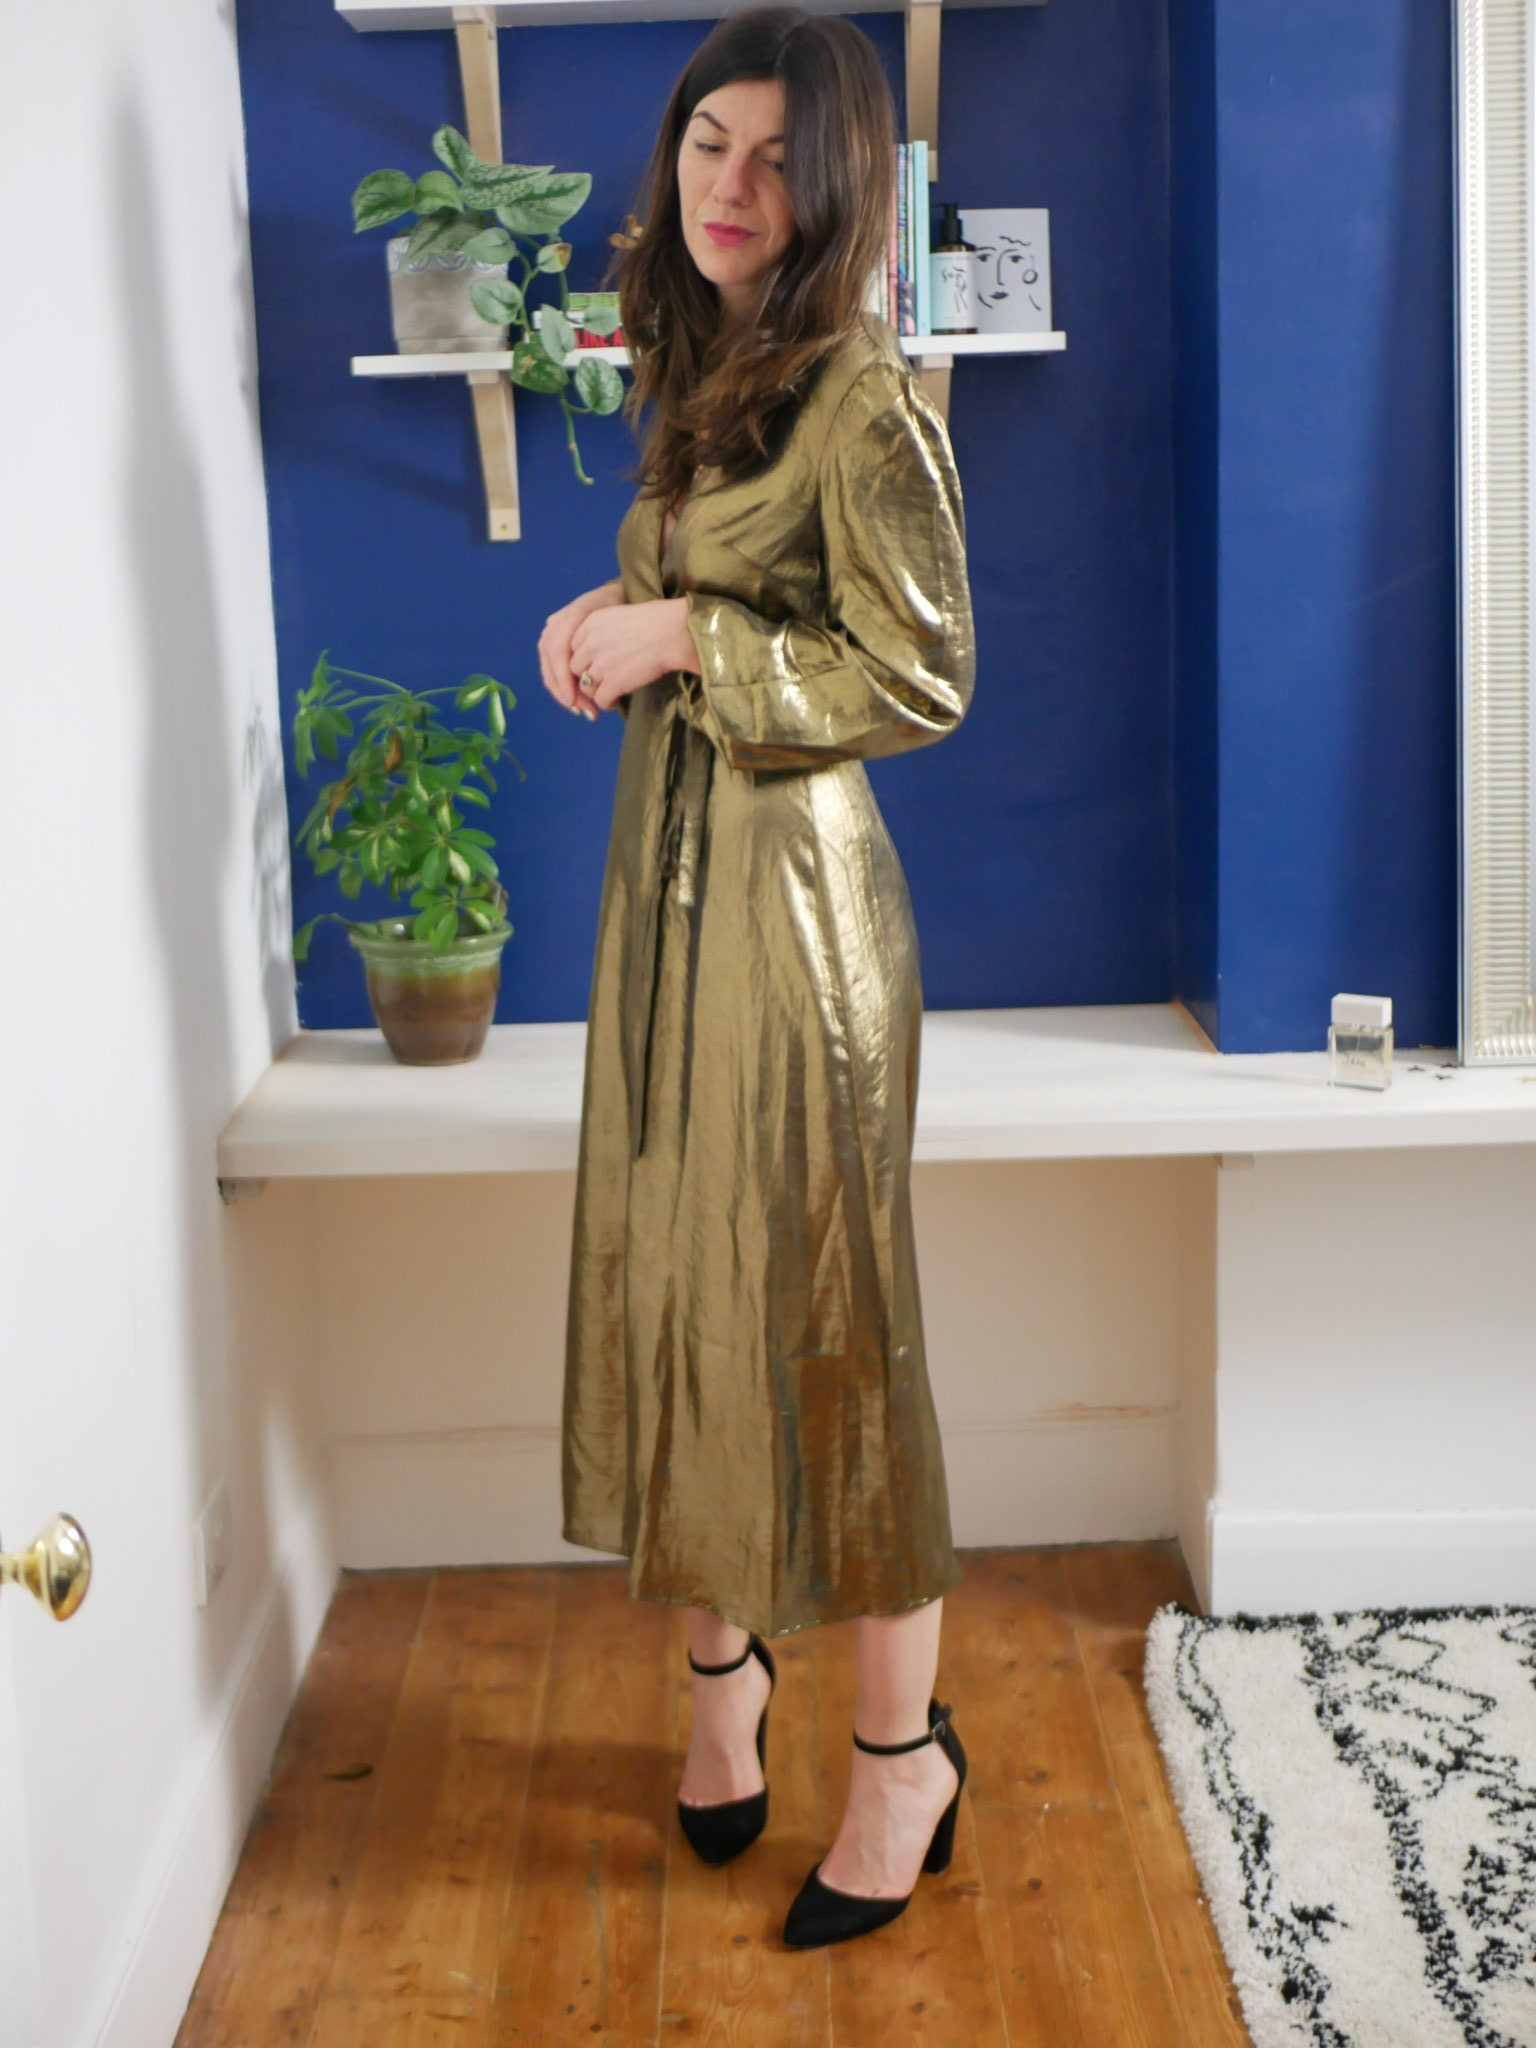 "<a href= ""https://www.endource.com/product/and-other-stories-metallic-satin-midi-dress/W8EszUzt_QABUv1x""><u>Metallic Midi Dress: & Other Stories</a></u>"